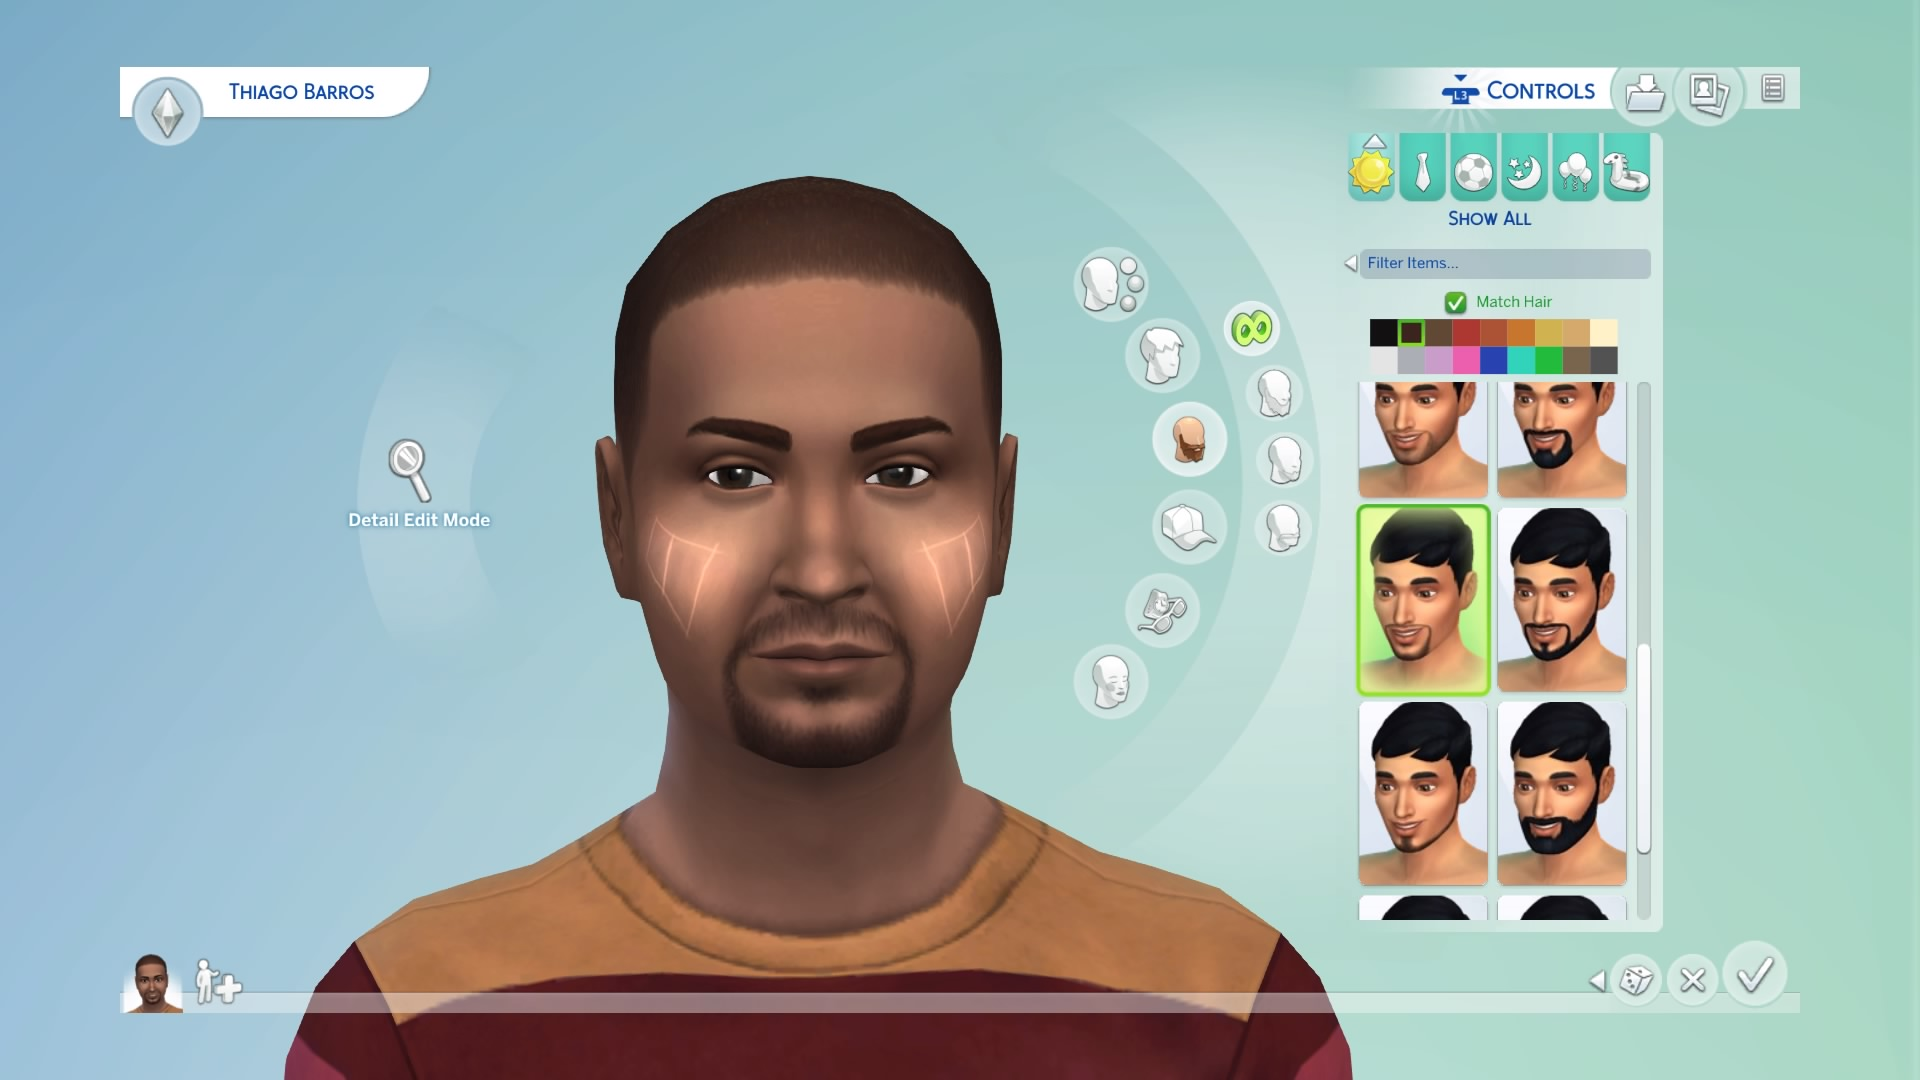 The Sims 4: Vale a Pena? 1